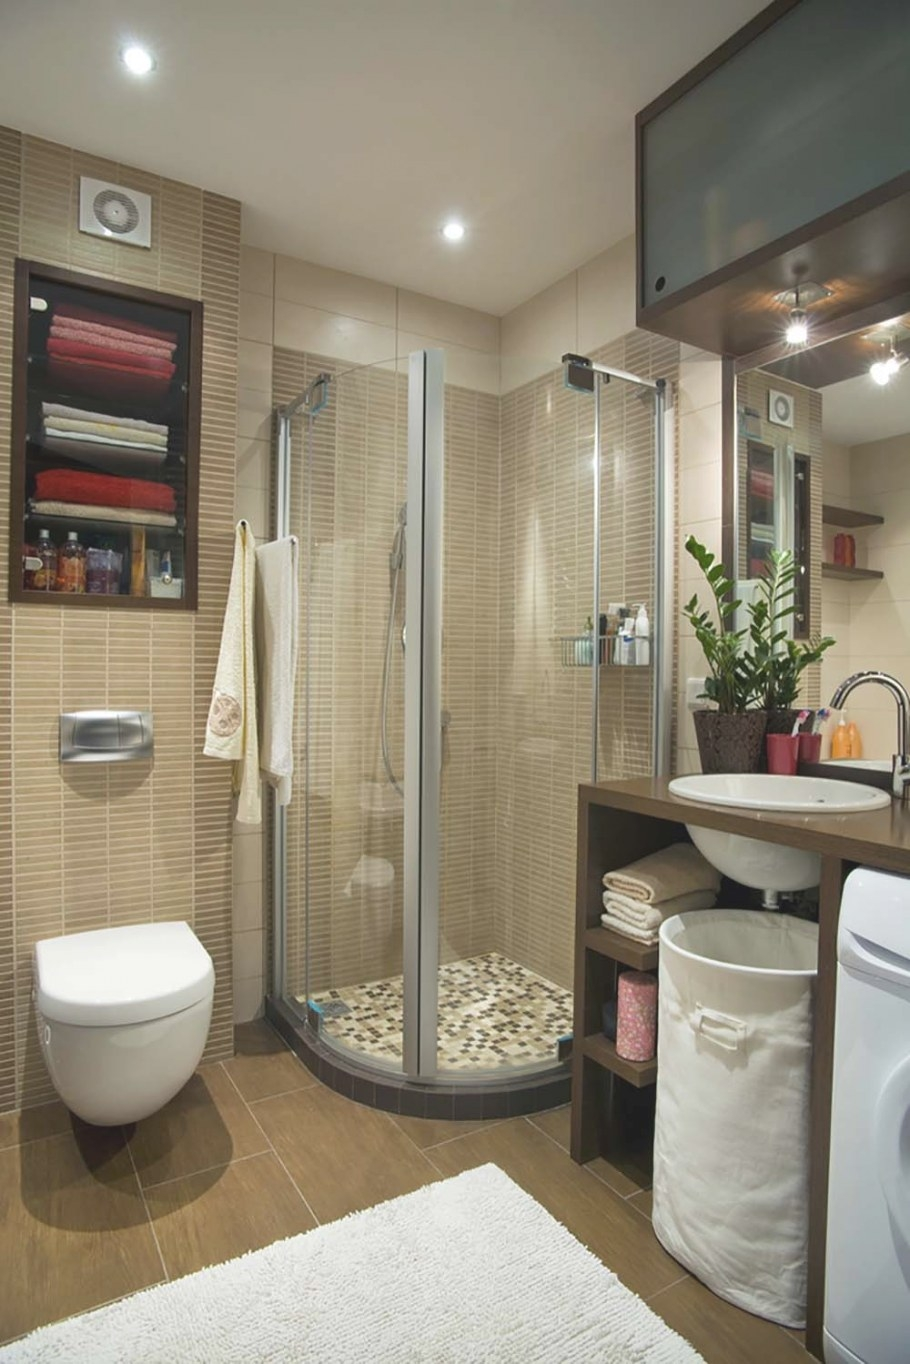 51 Beautiful And Functional Small Bathrooms within Images Of Small Bathrooms